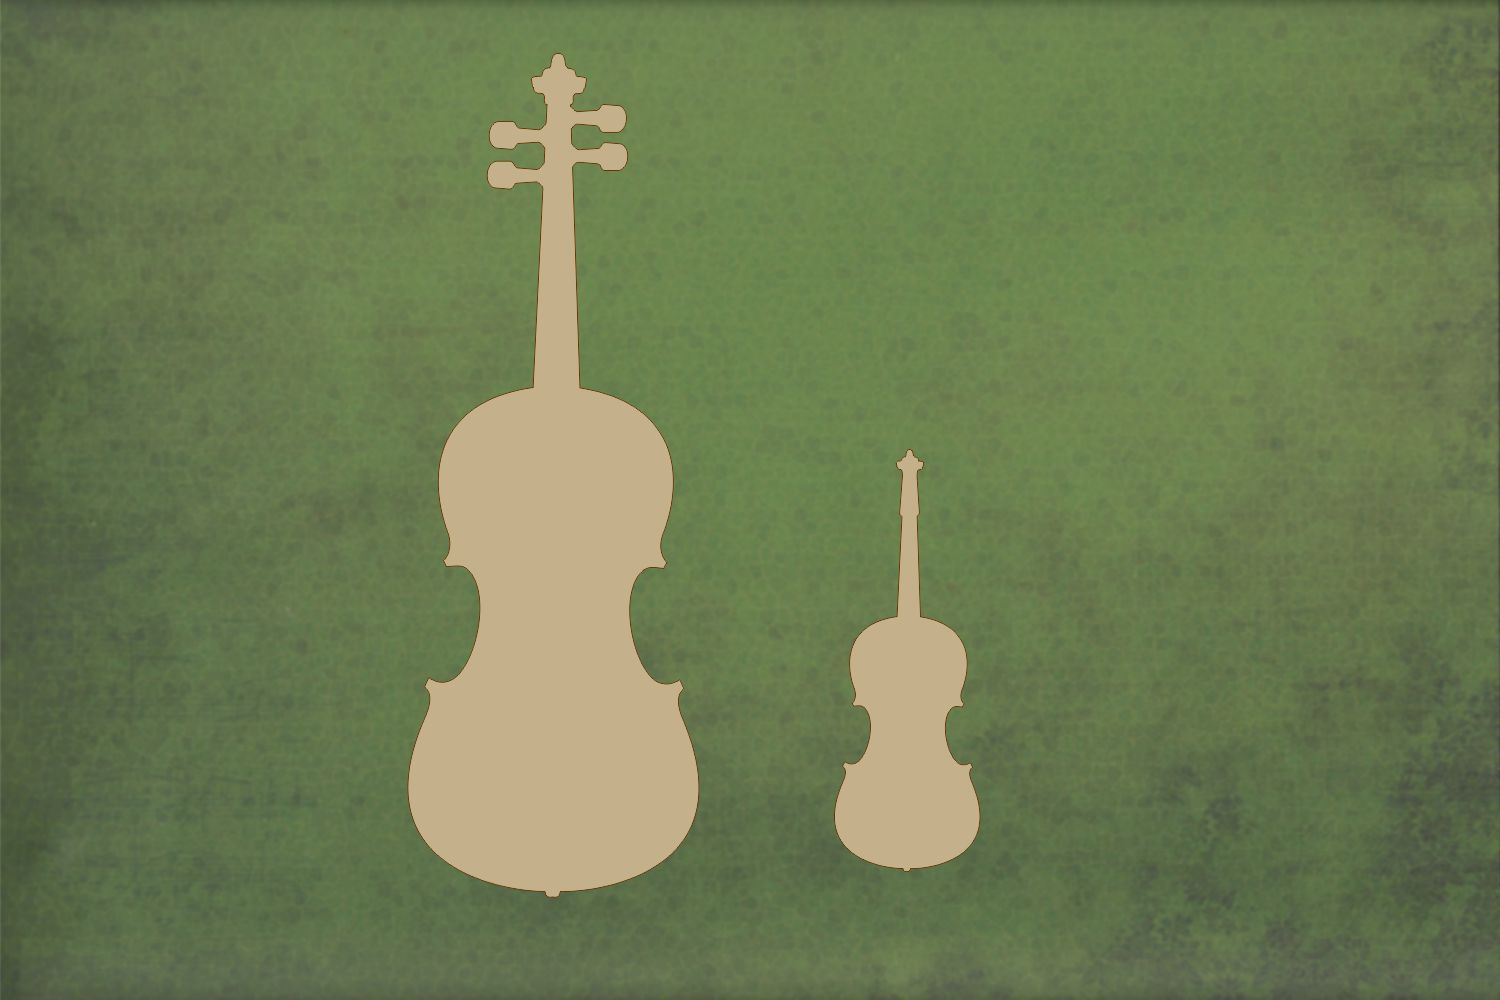 Laser cut, blank wooden Fiddle shape for craft